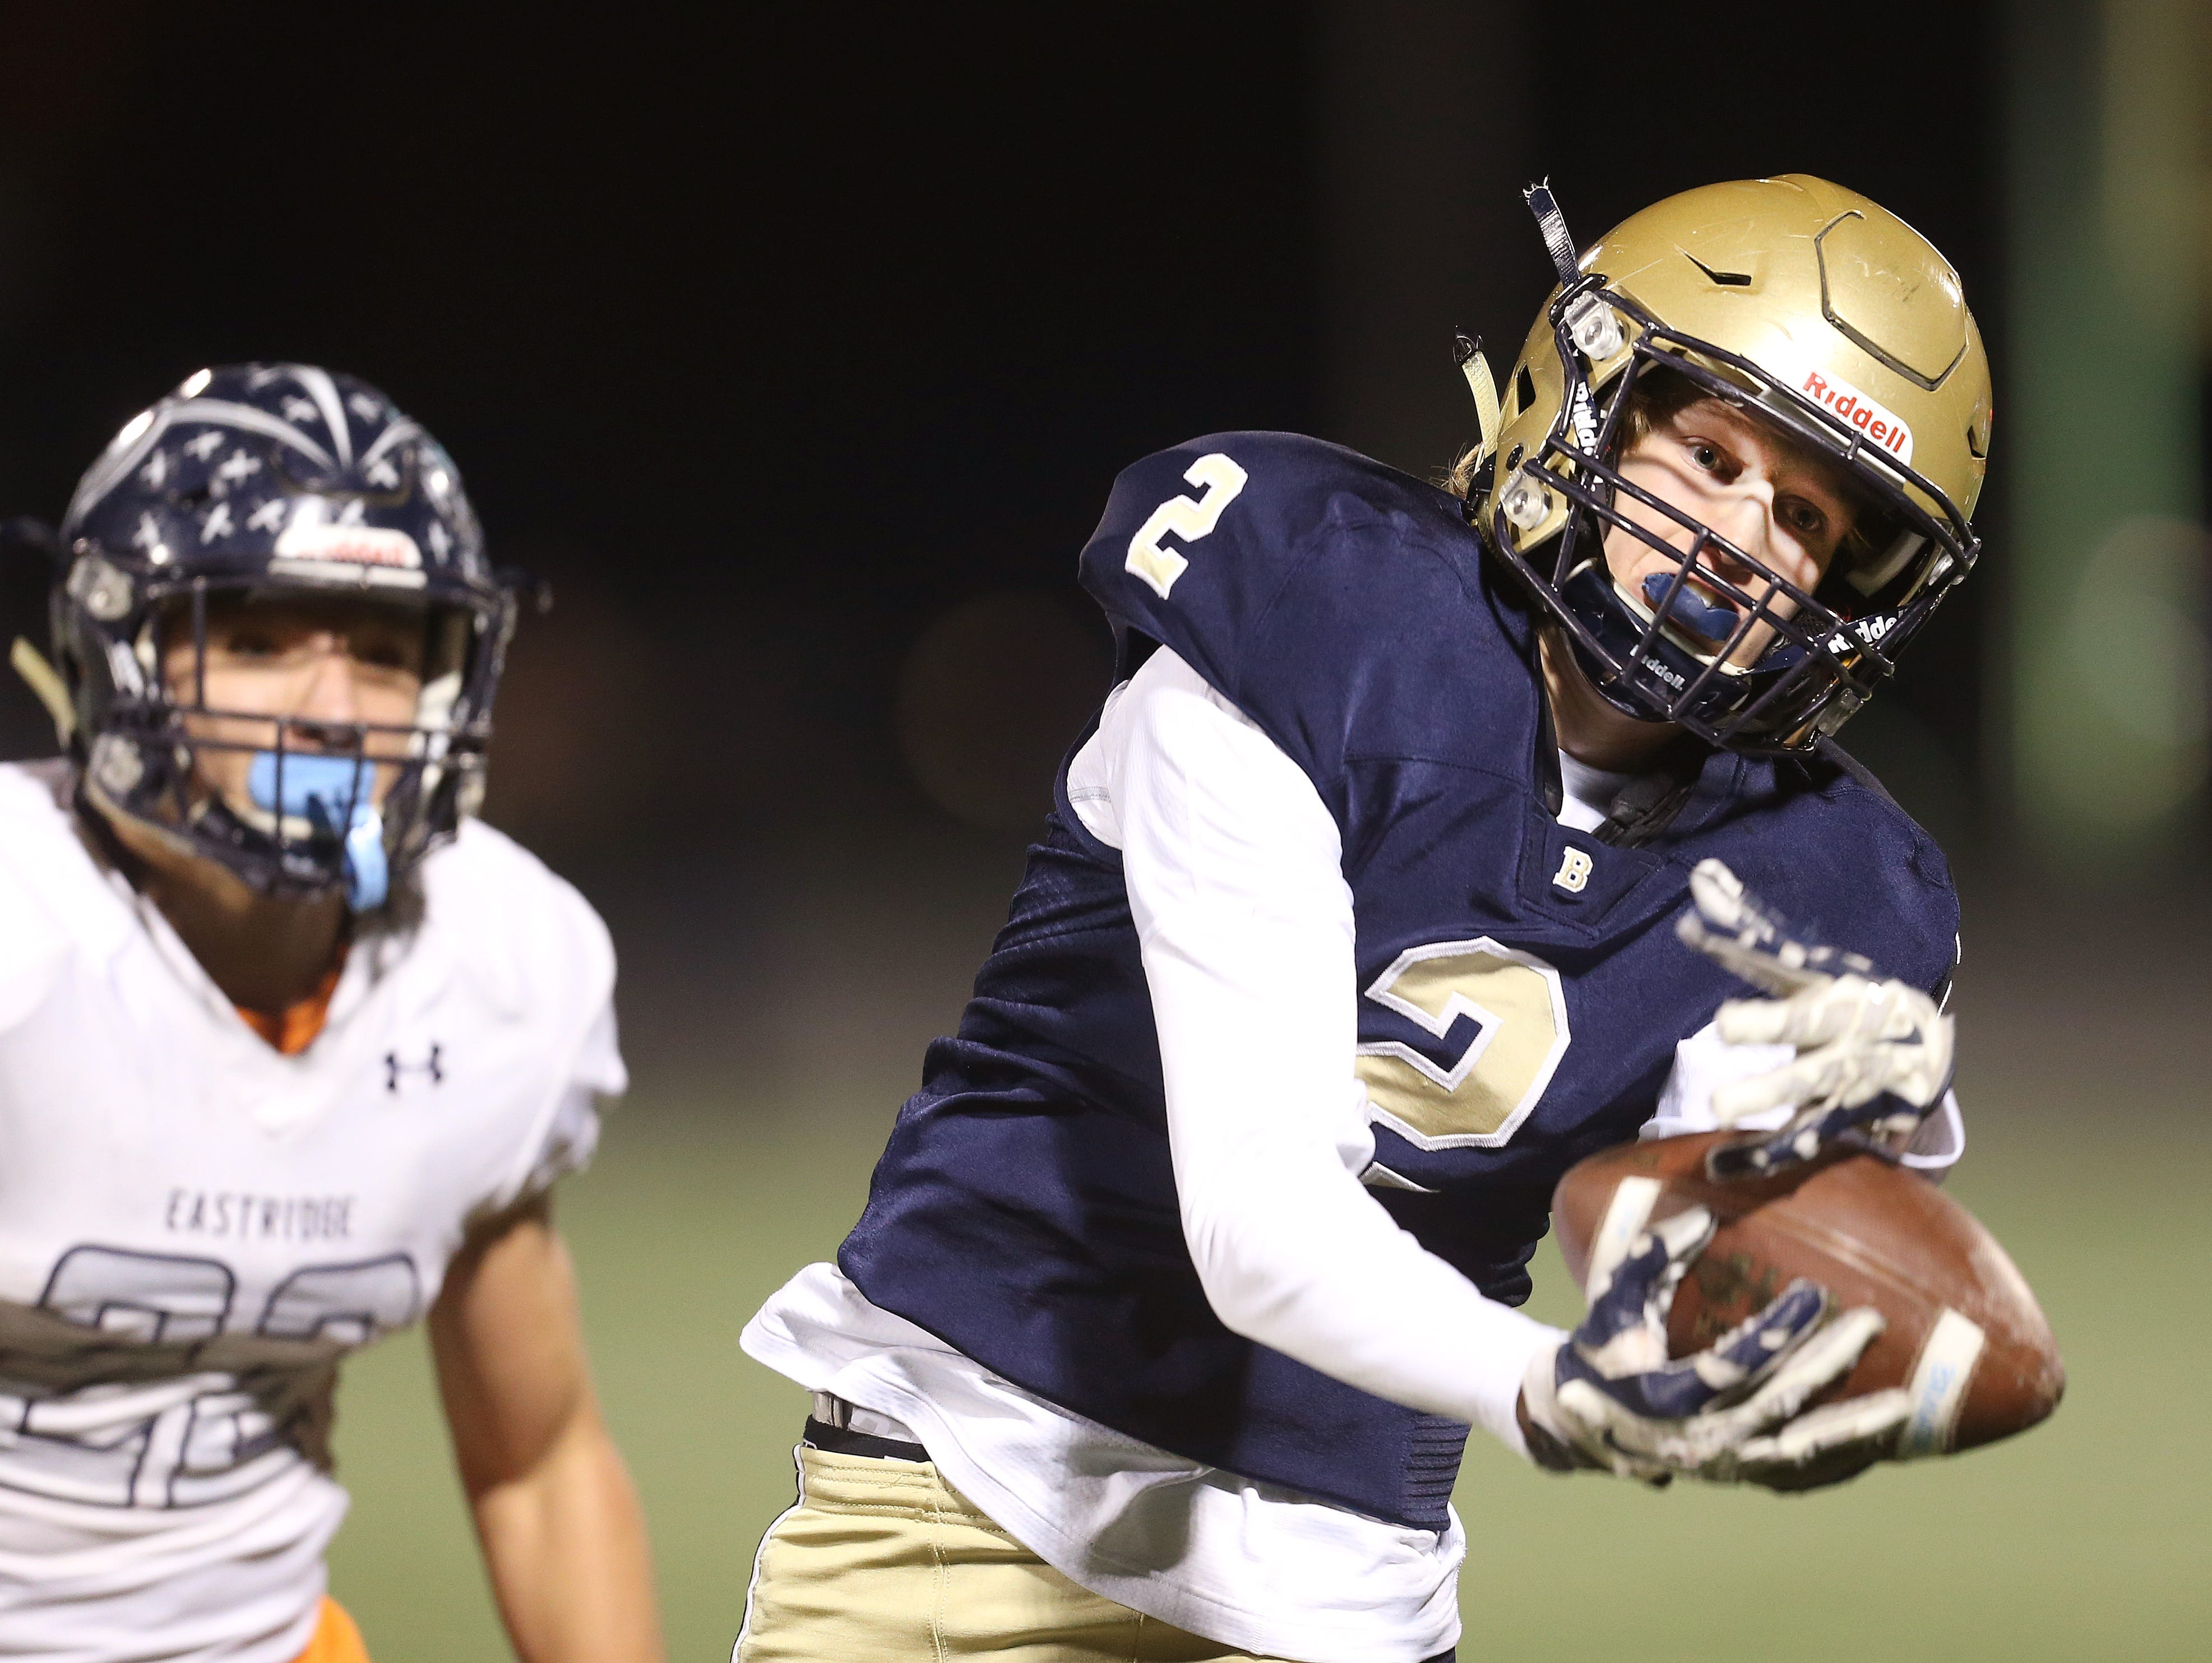 Brighton receiver Noah Shinaman (2) makes an over the shoulder catch on this deep pass against Eastridge's Jake Trykoski (22). The play set up a second quarter touchdown.